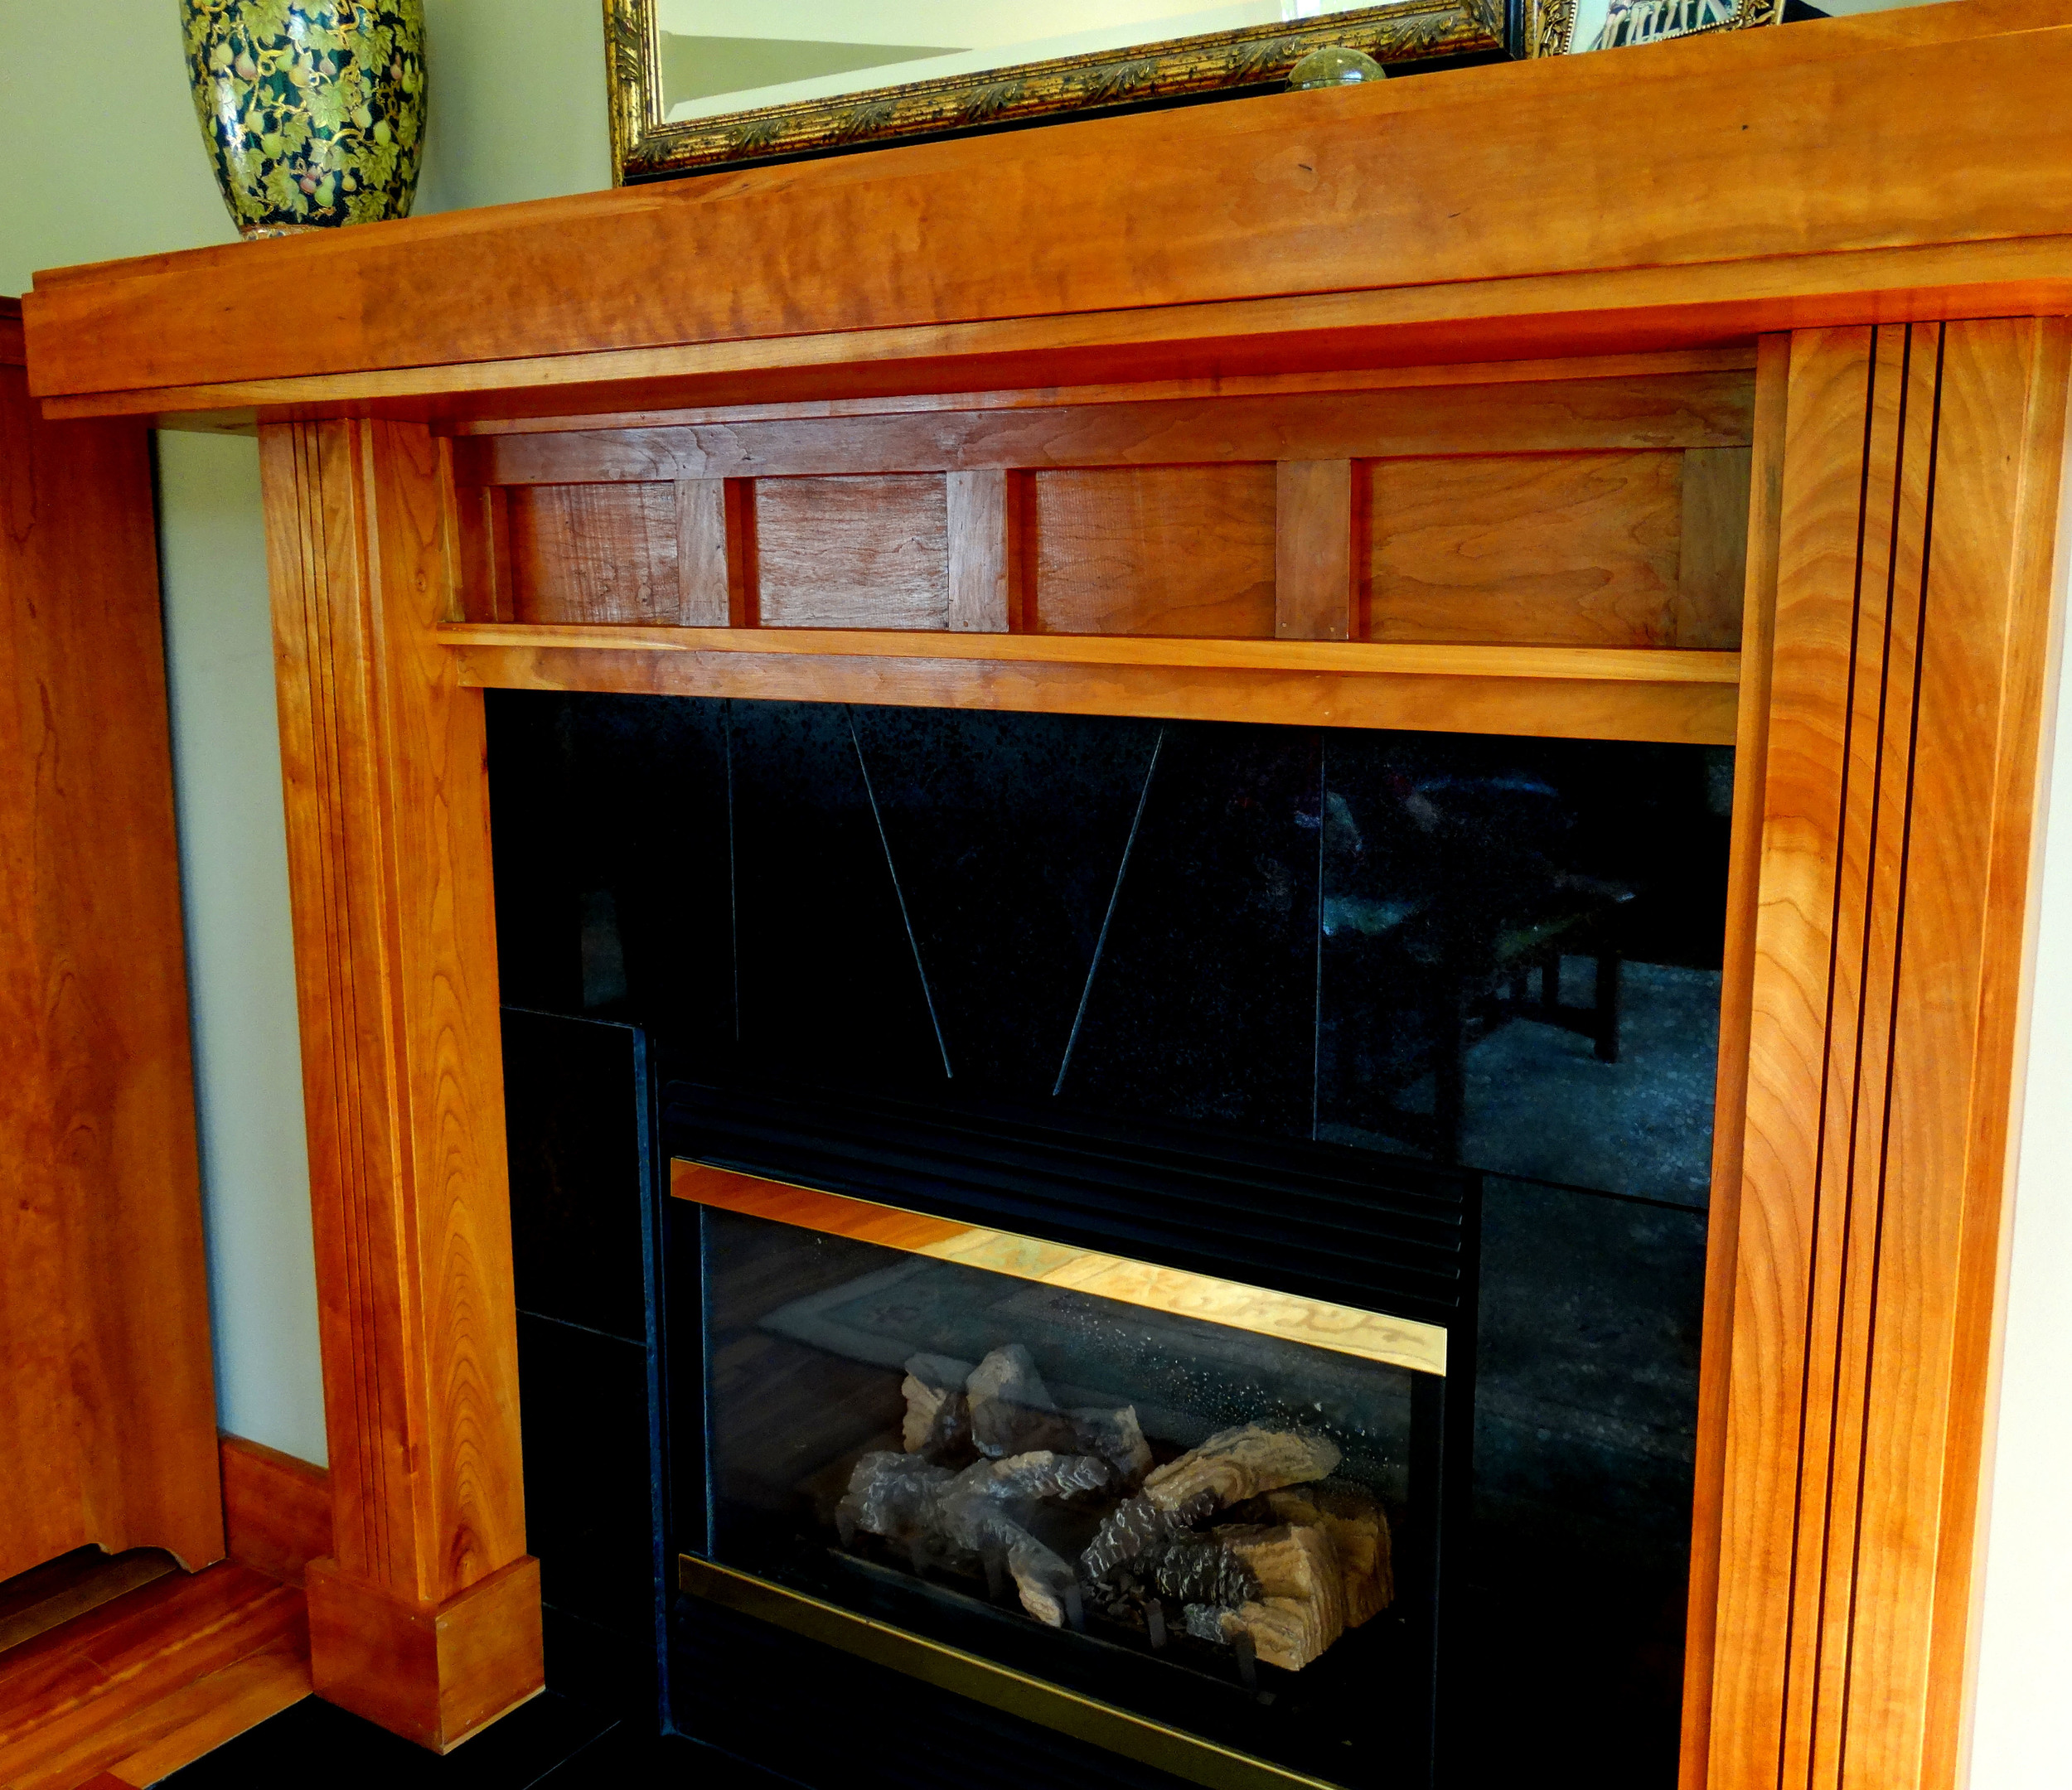 Statement fireplaces.